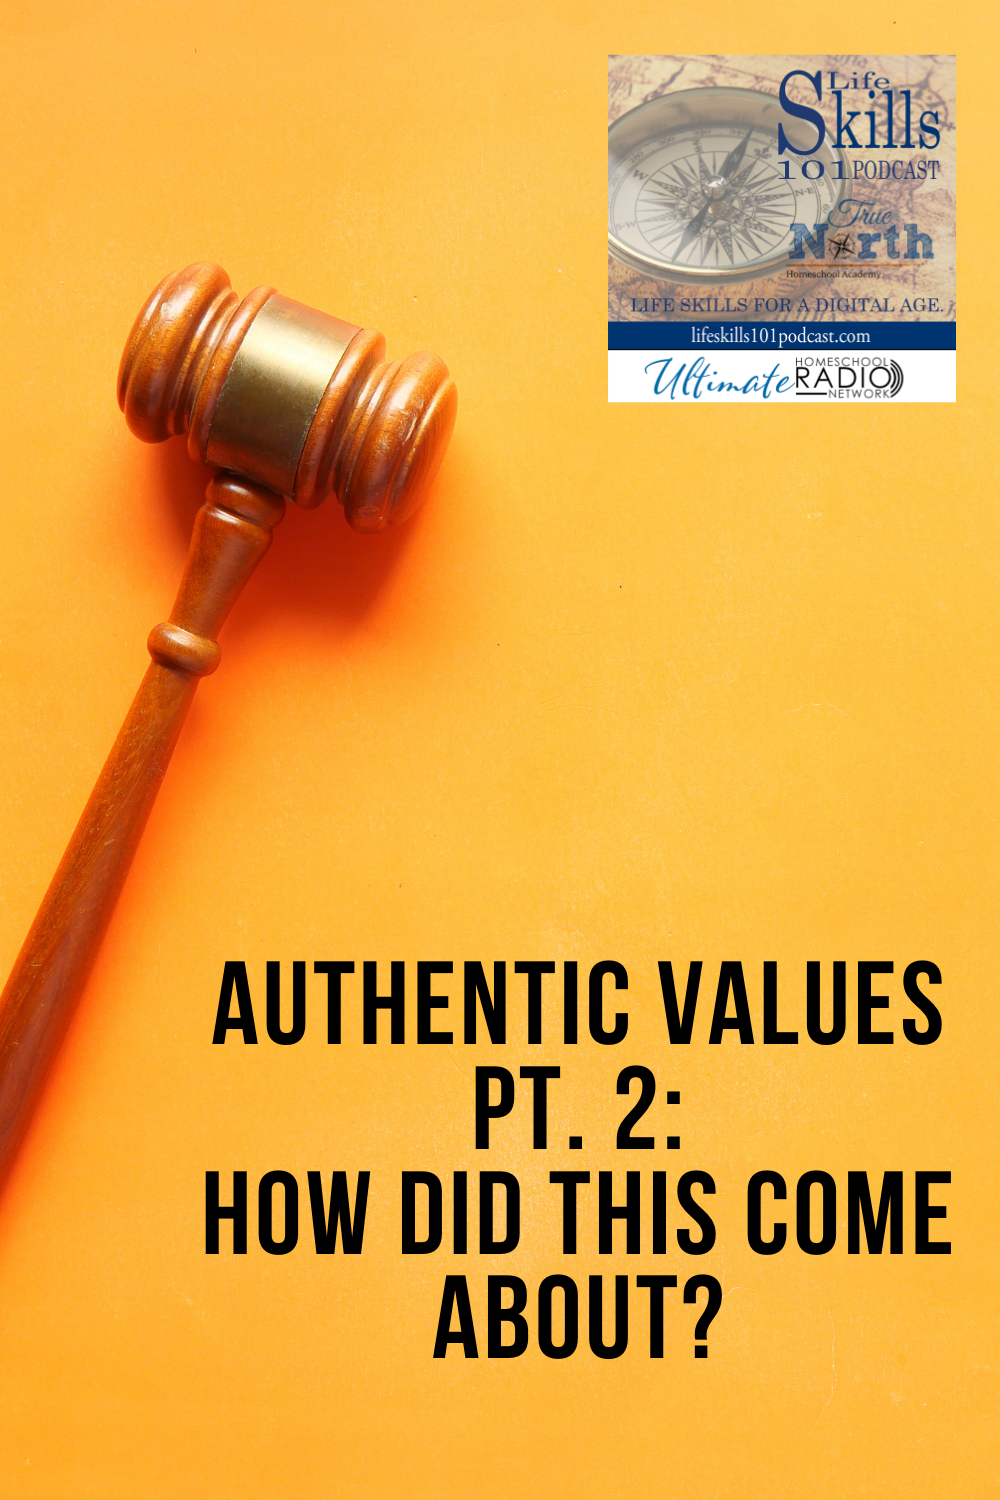 Authentic Values- How Did This Come About?